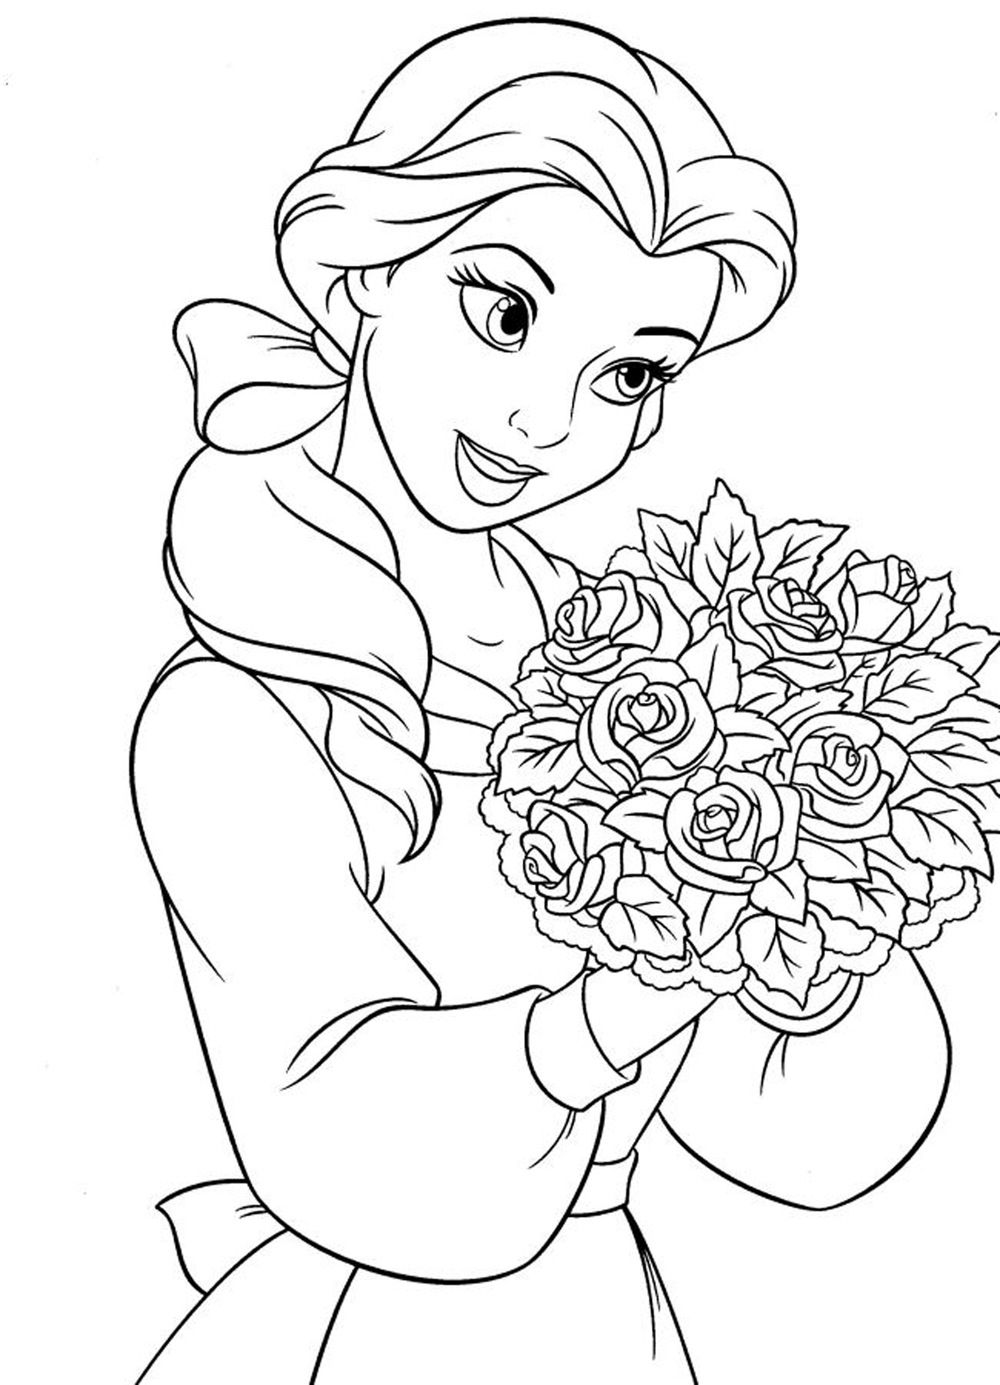 coloring pages of princesses princess coloring pages for girls   Free Large Images | Coloring  coloring pages of princesses